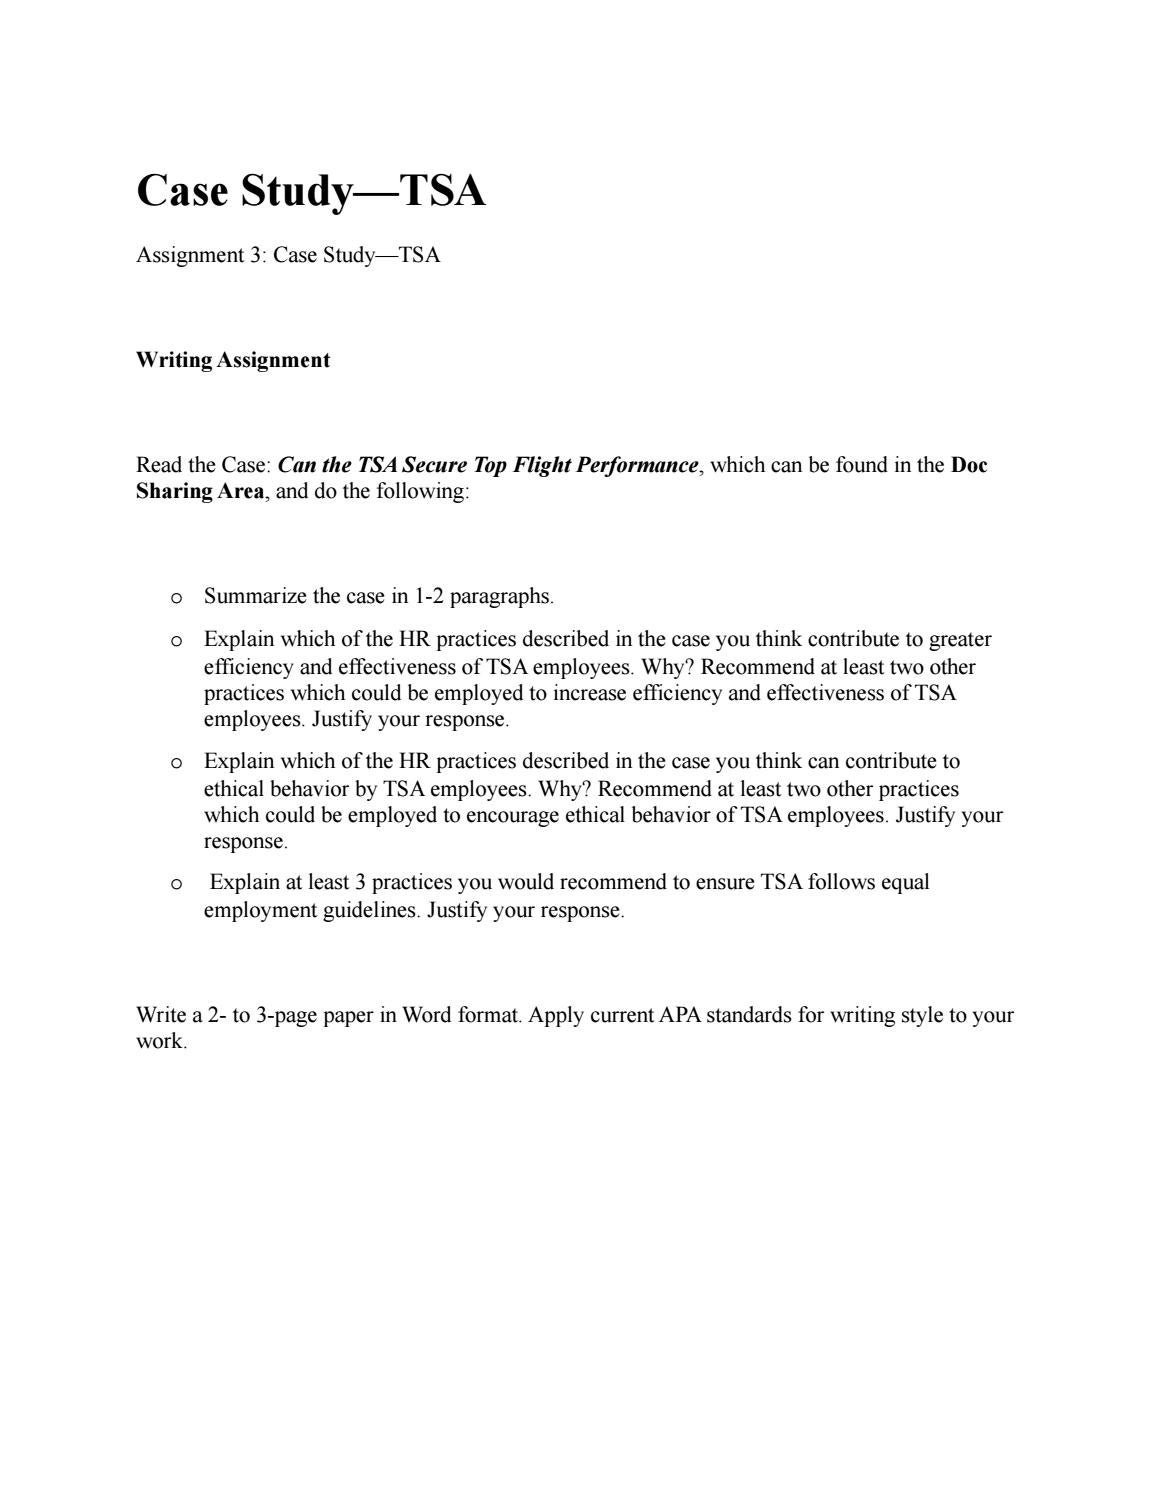 working capital simulation essay Harvard business publishing: working capital simulation: managing growth assignmentch 1 - 21 offundamentals of corporate financewileyplus assignmentsall.